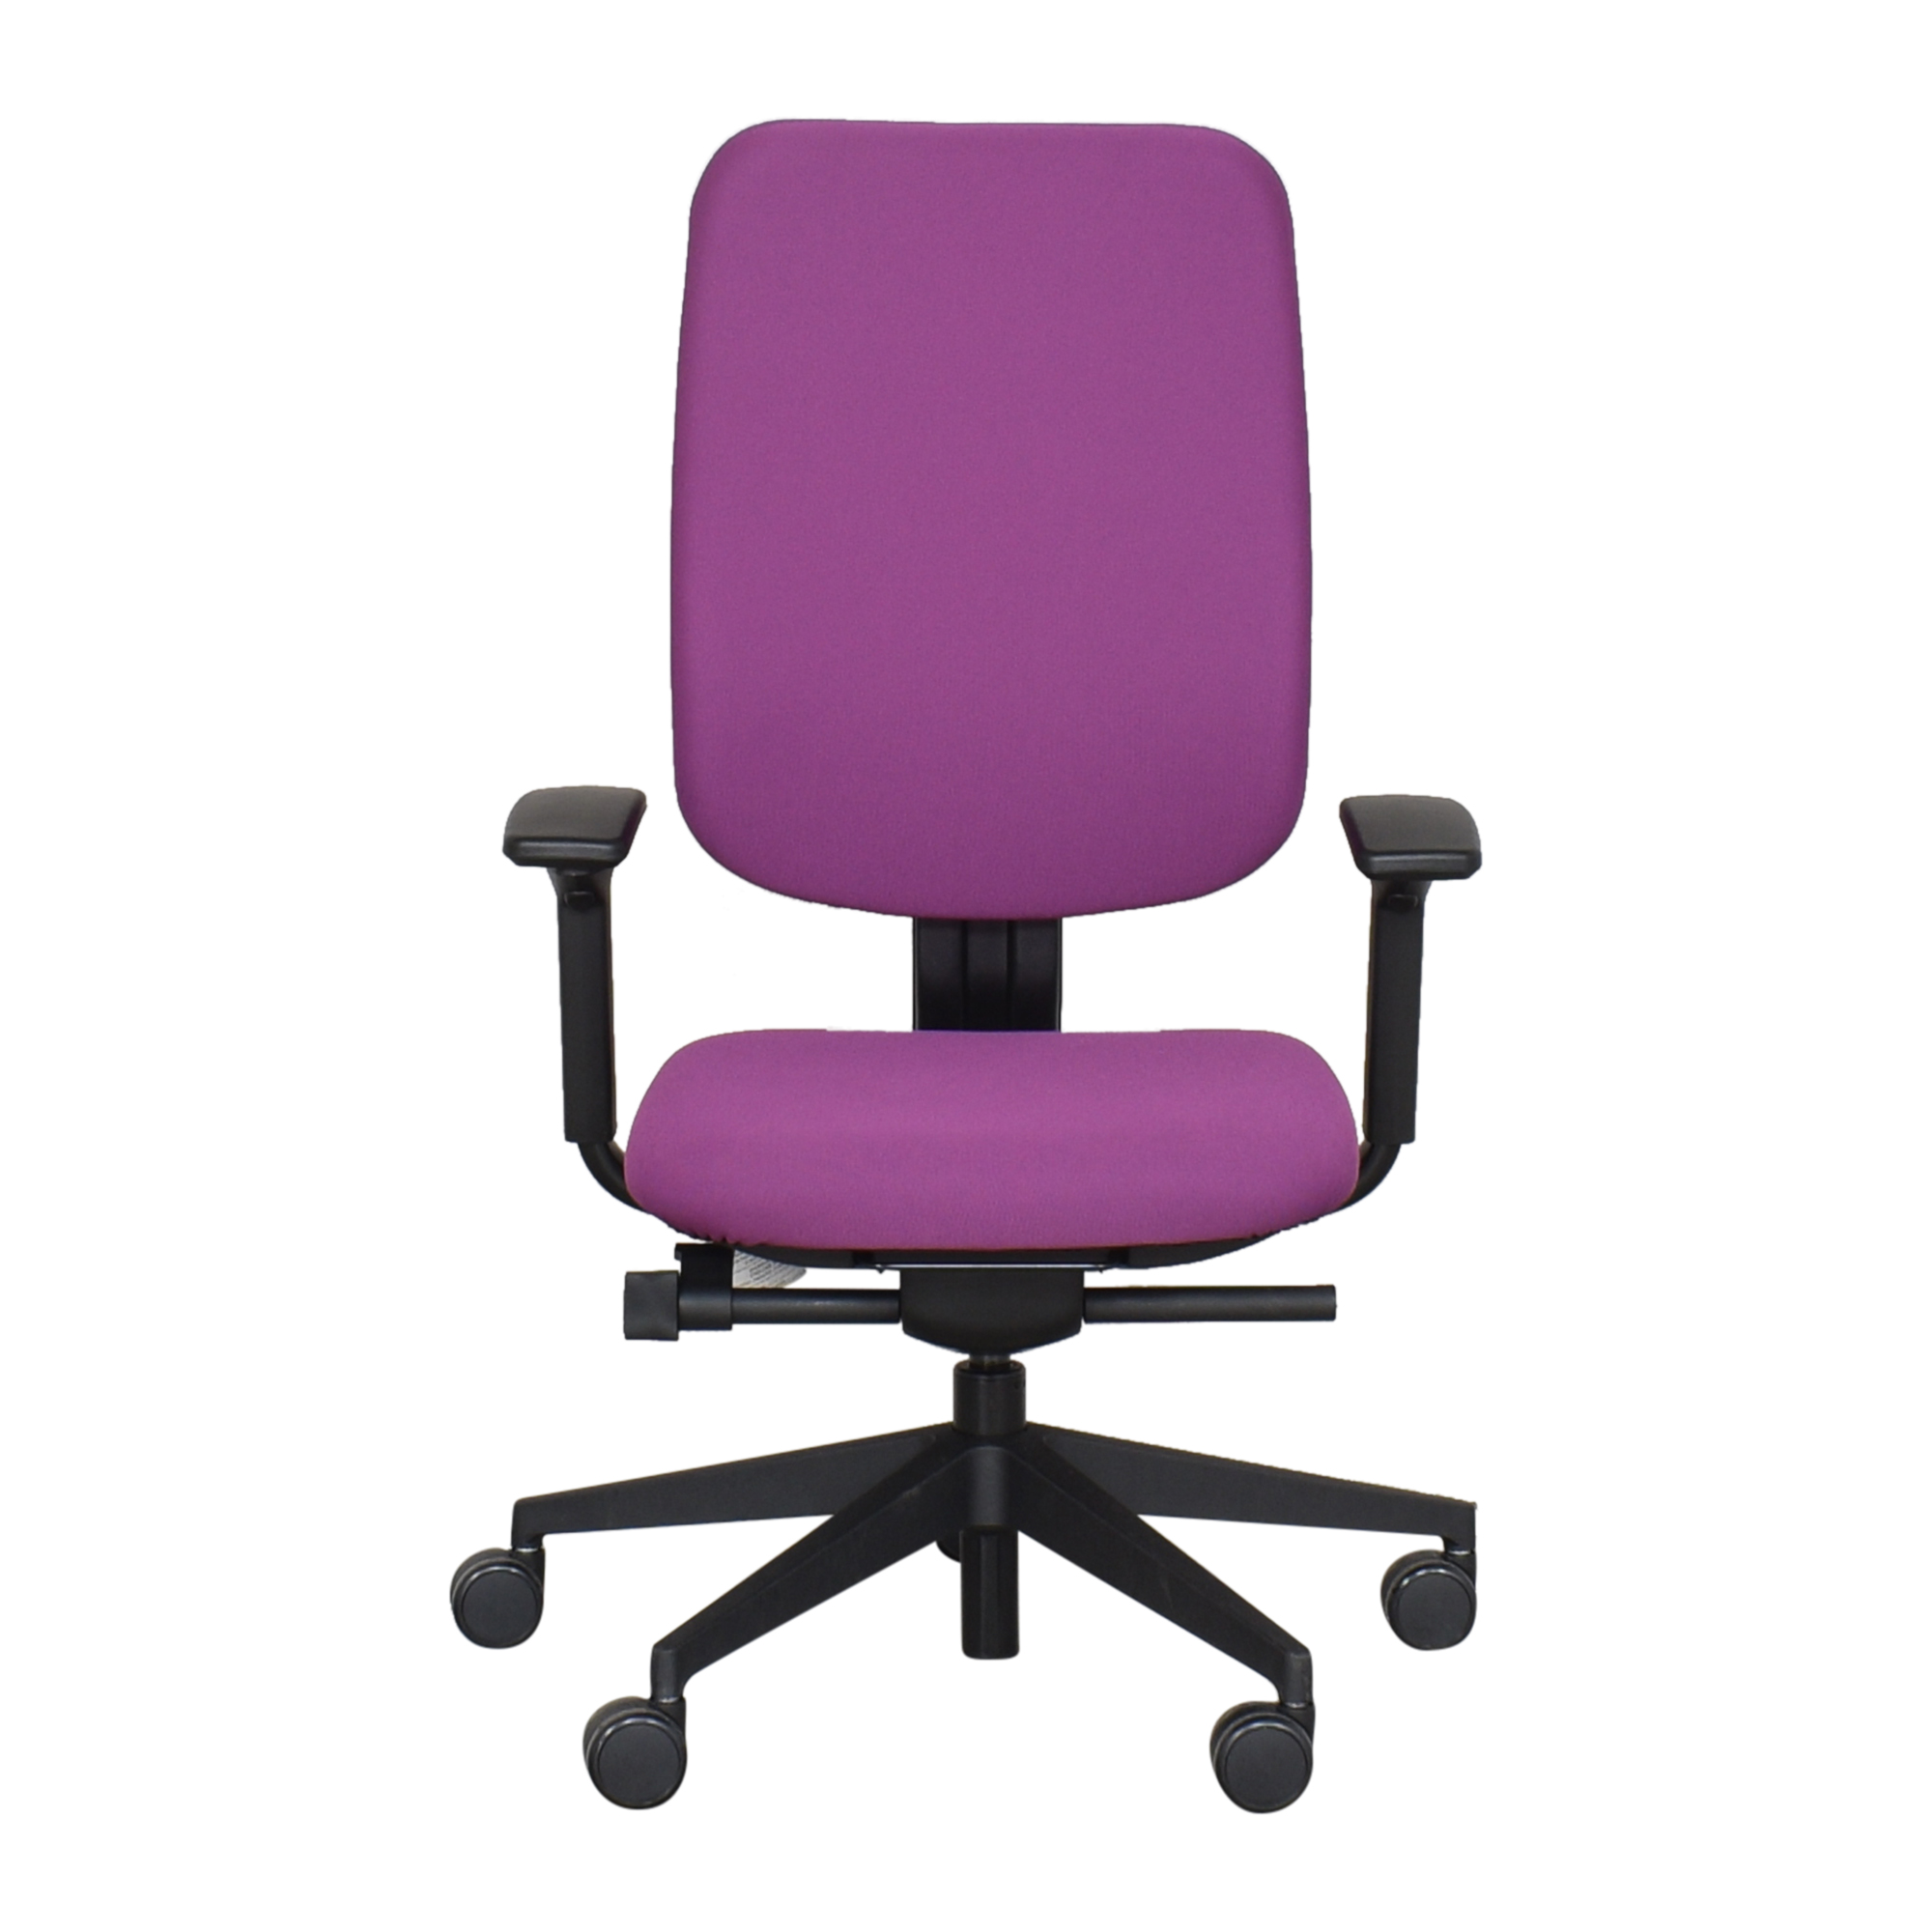 Steelcase Reply Upholstered Chair sale